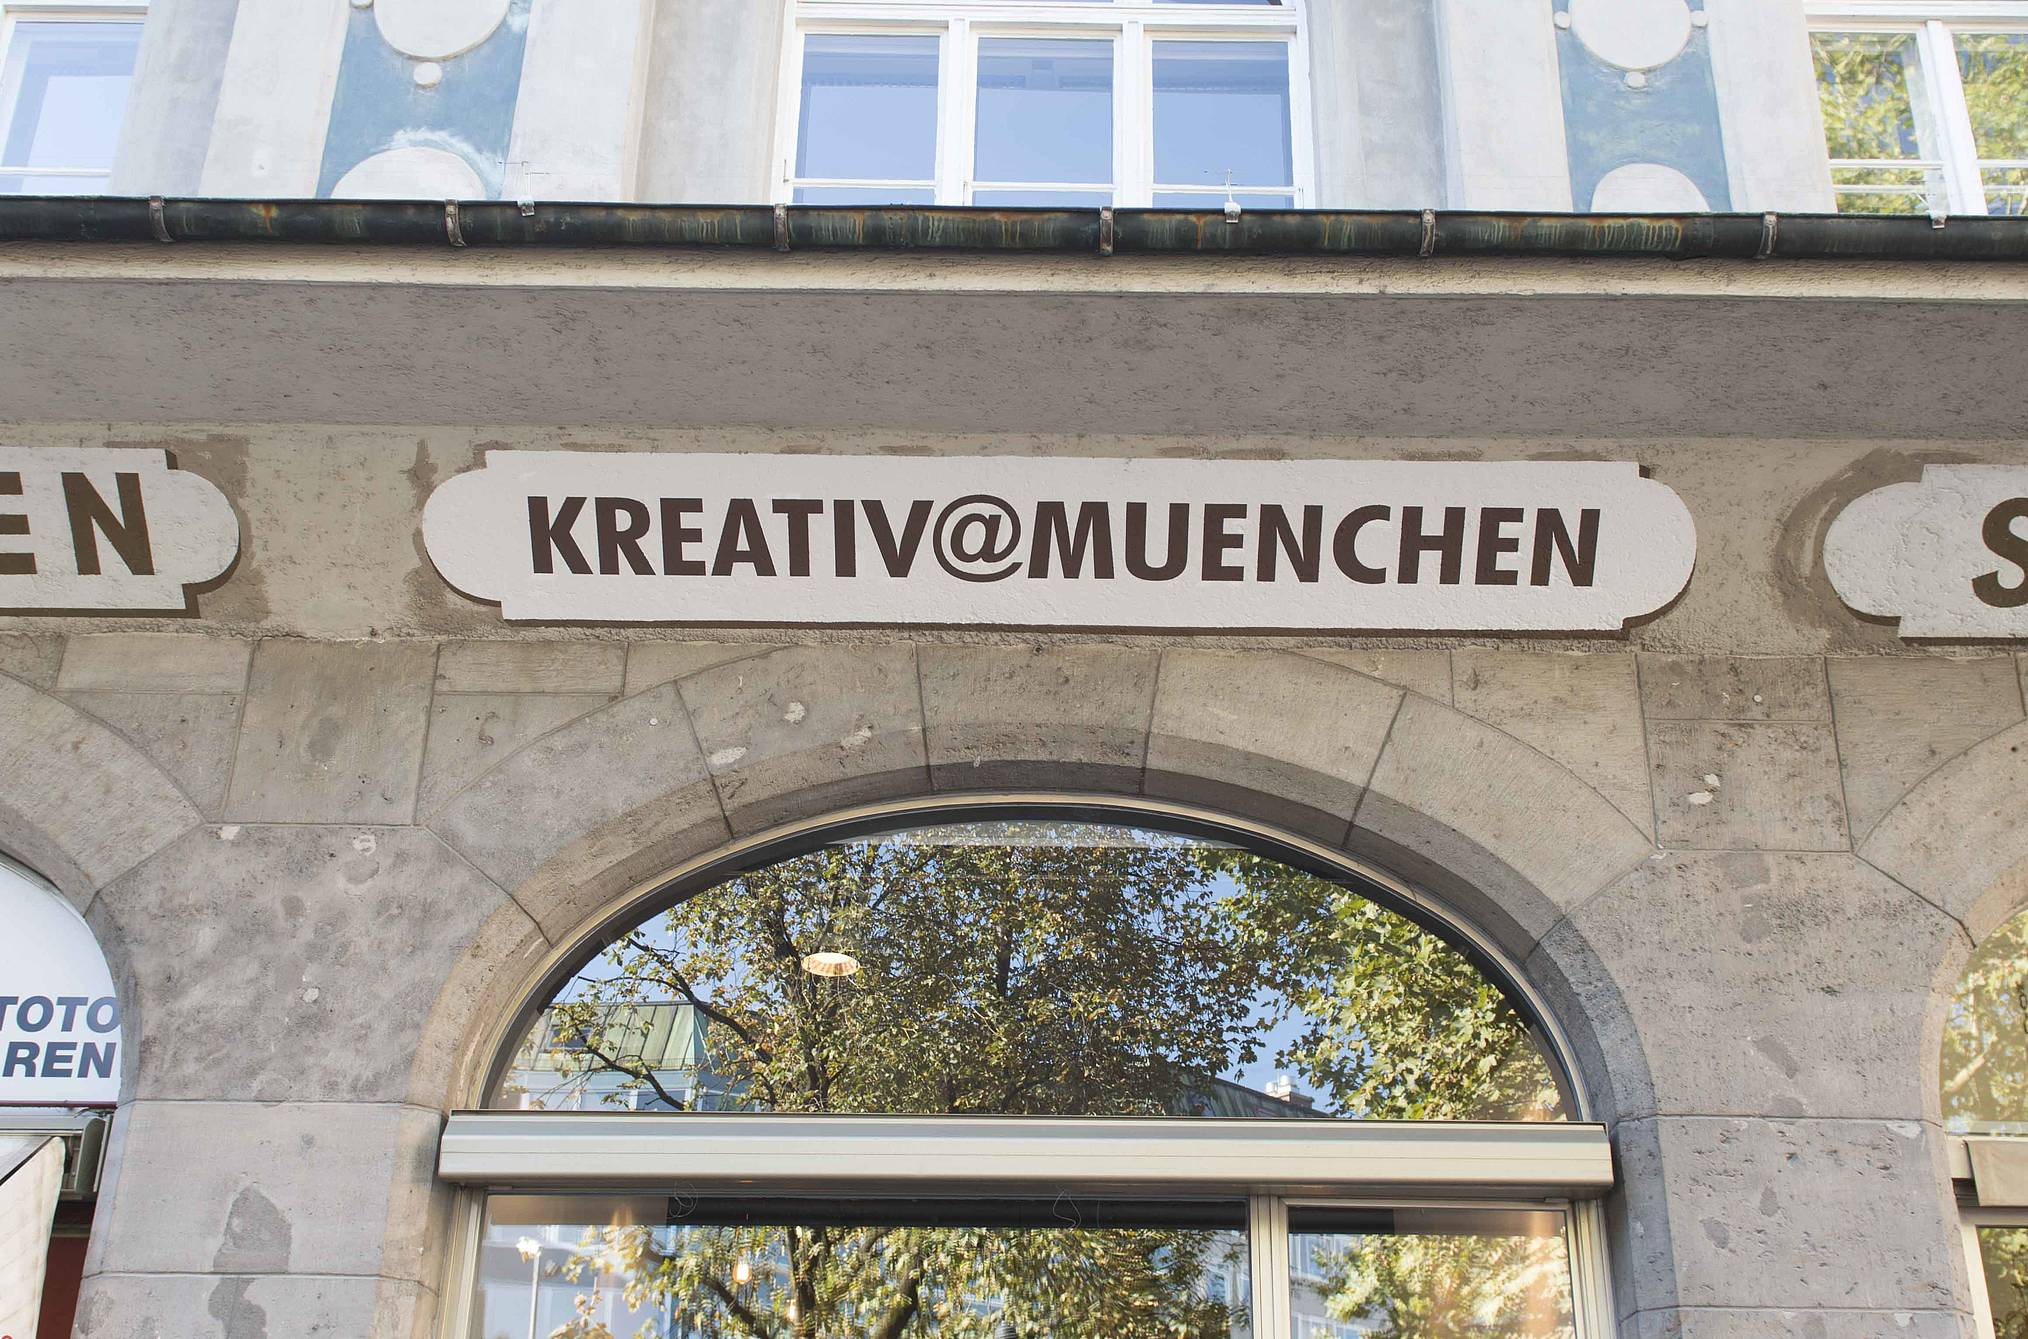 #kreativmuenchen: urban and rural areas and everything in between